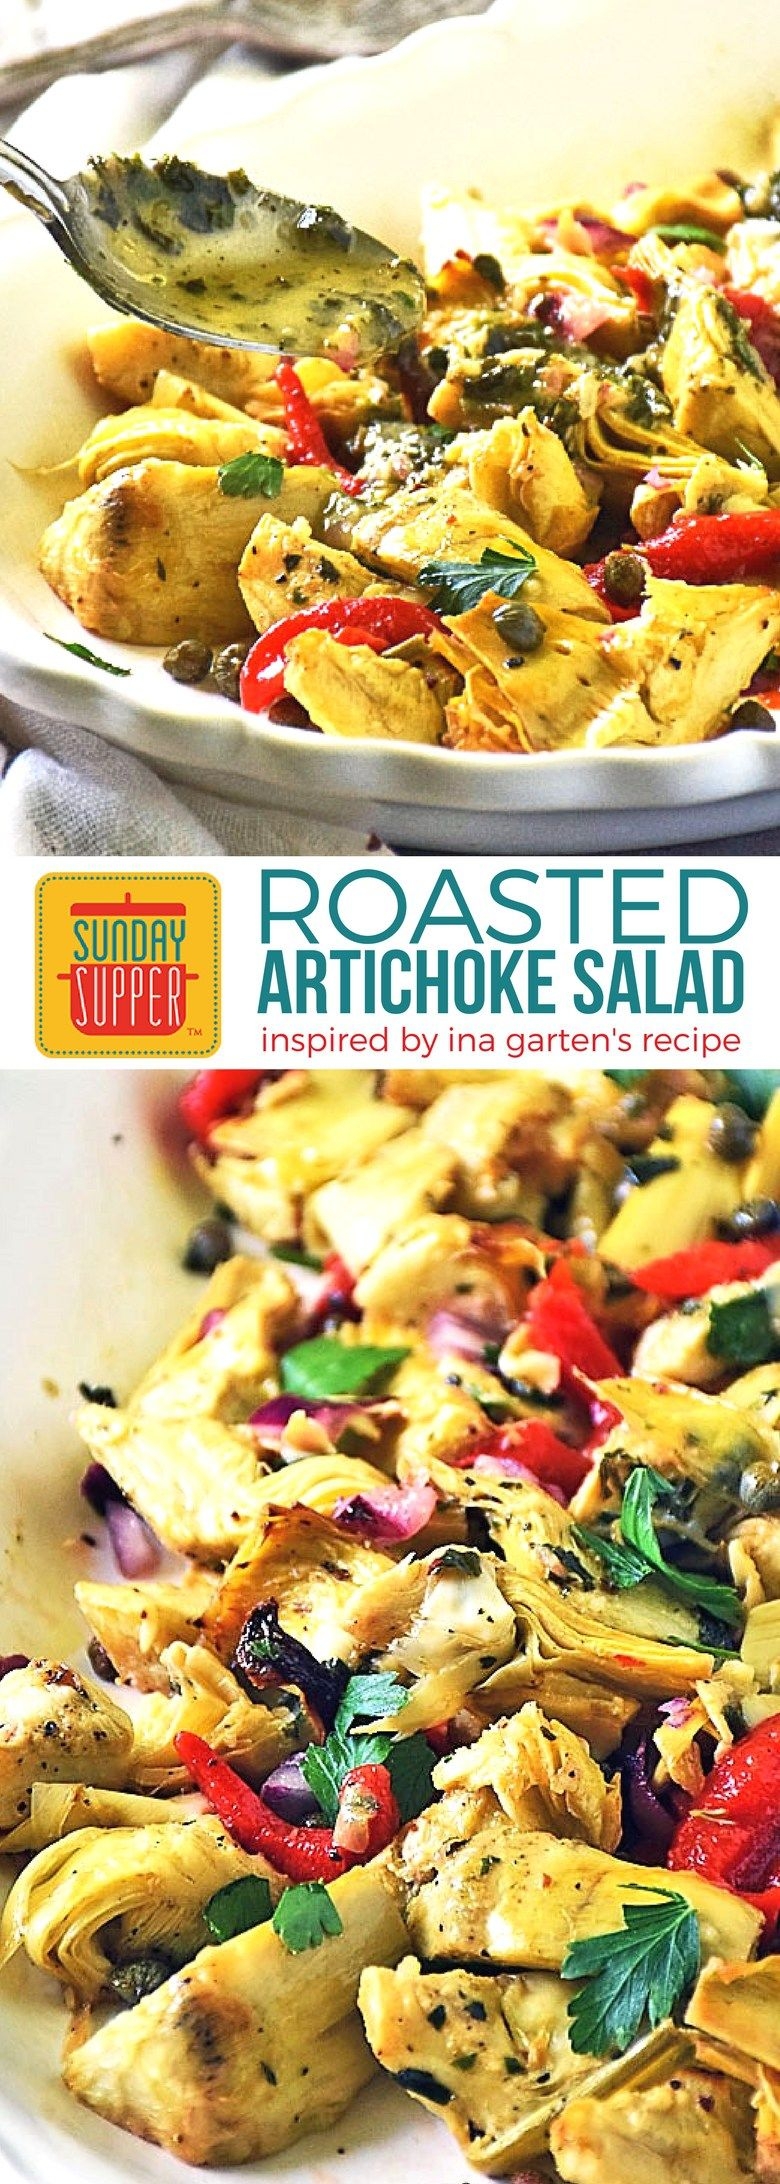 Inspired By Ina Garten S Roasted Artichoke Salad This Is One Of The Easiest Prettiest Holiday Recipes You Should Be Serving For Thanksgiving